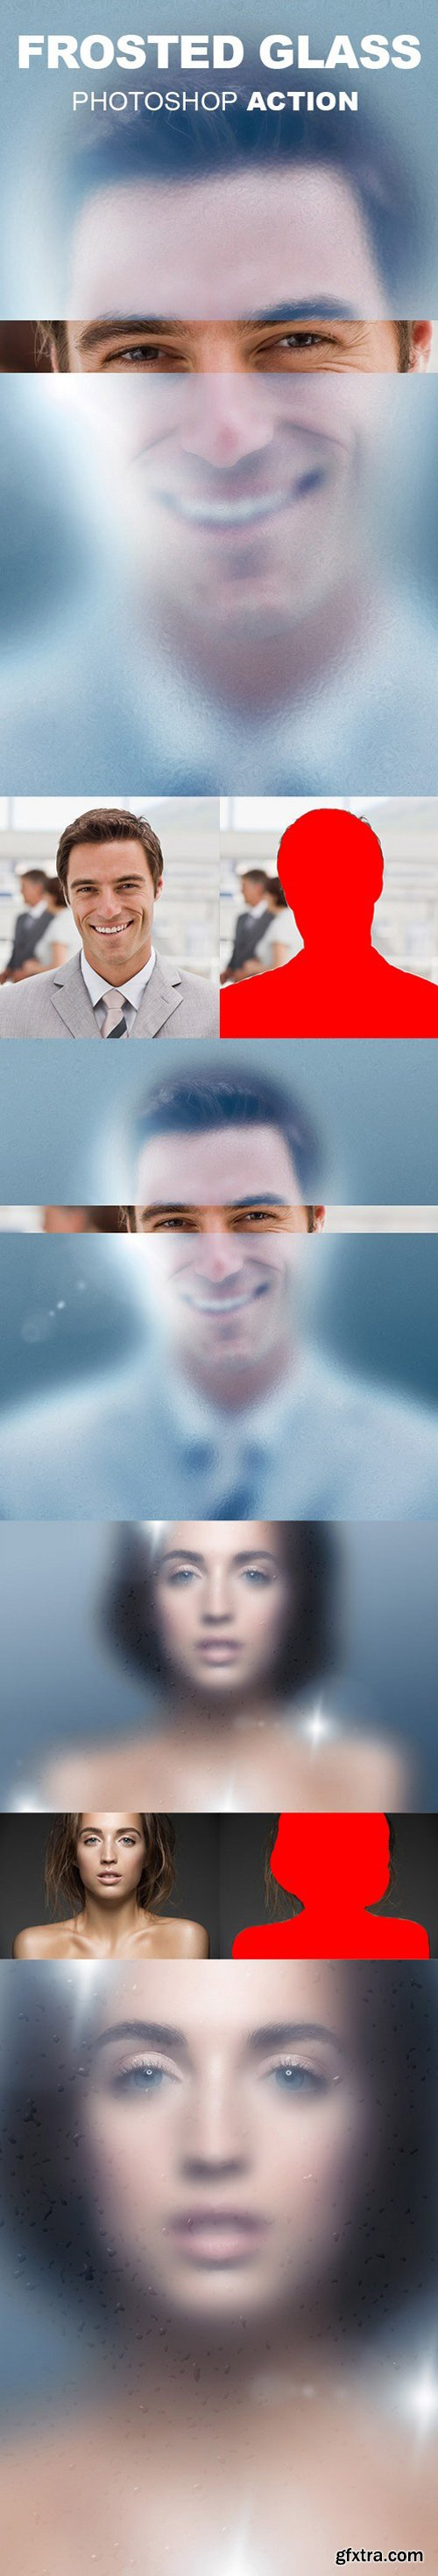 Graphicriver - Frosted Glass Photoshop Action 18344266